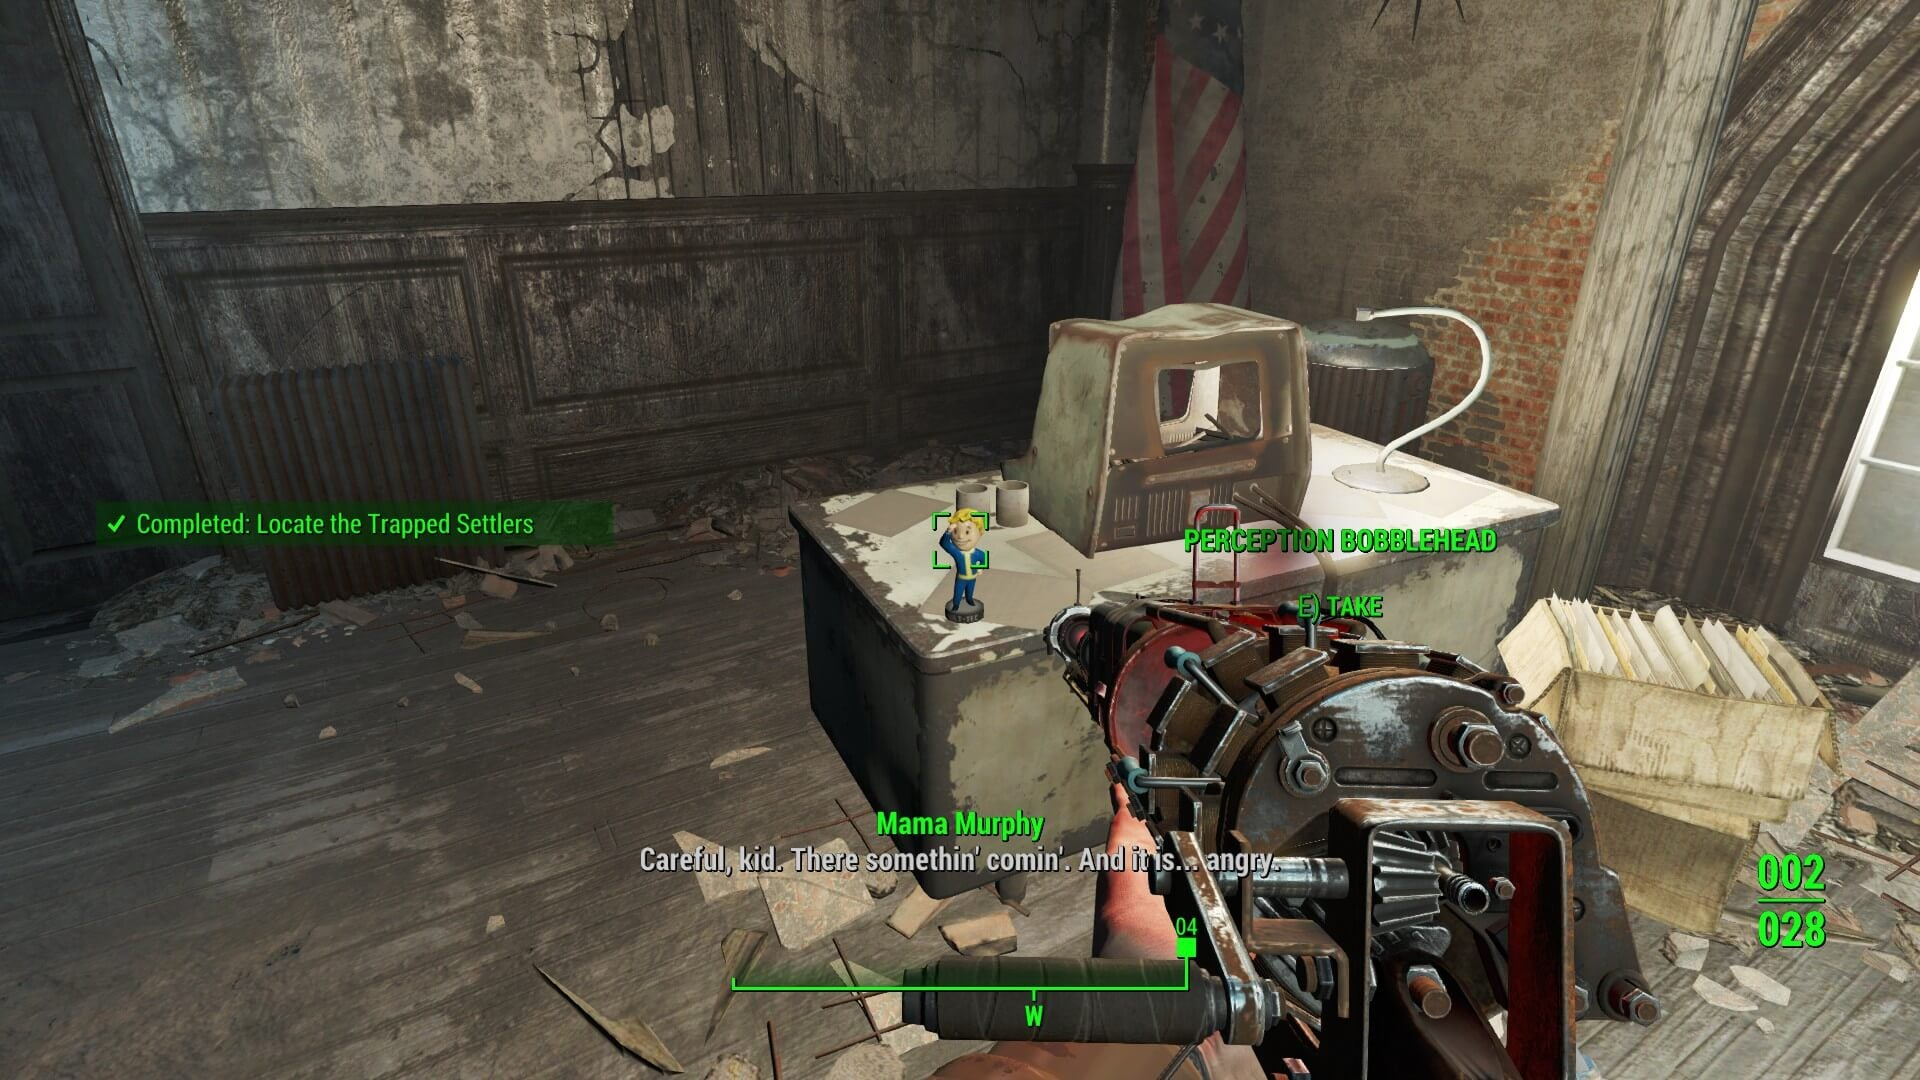 Perception Bobblehead. Credit to Fallout Wikia for the image.